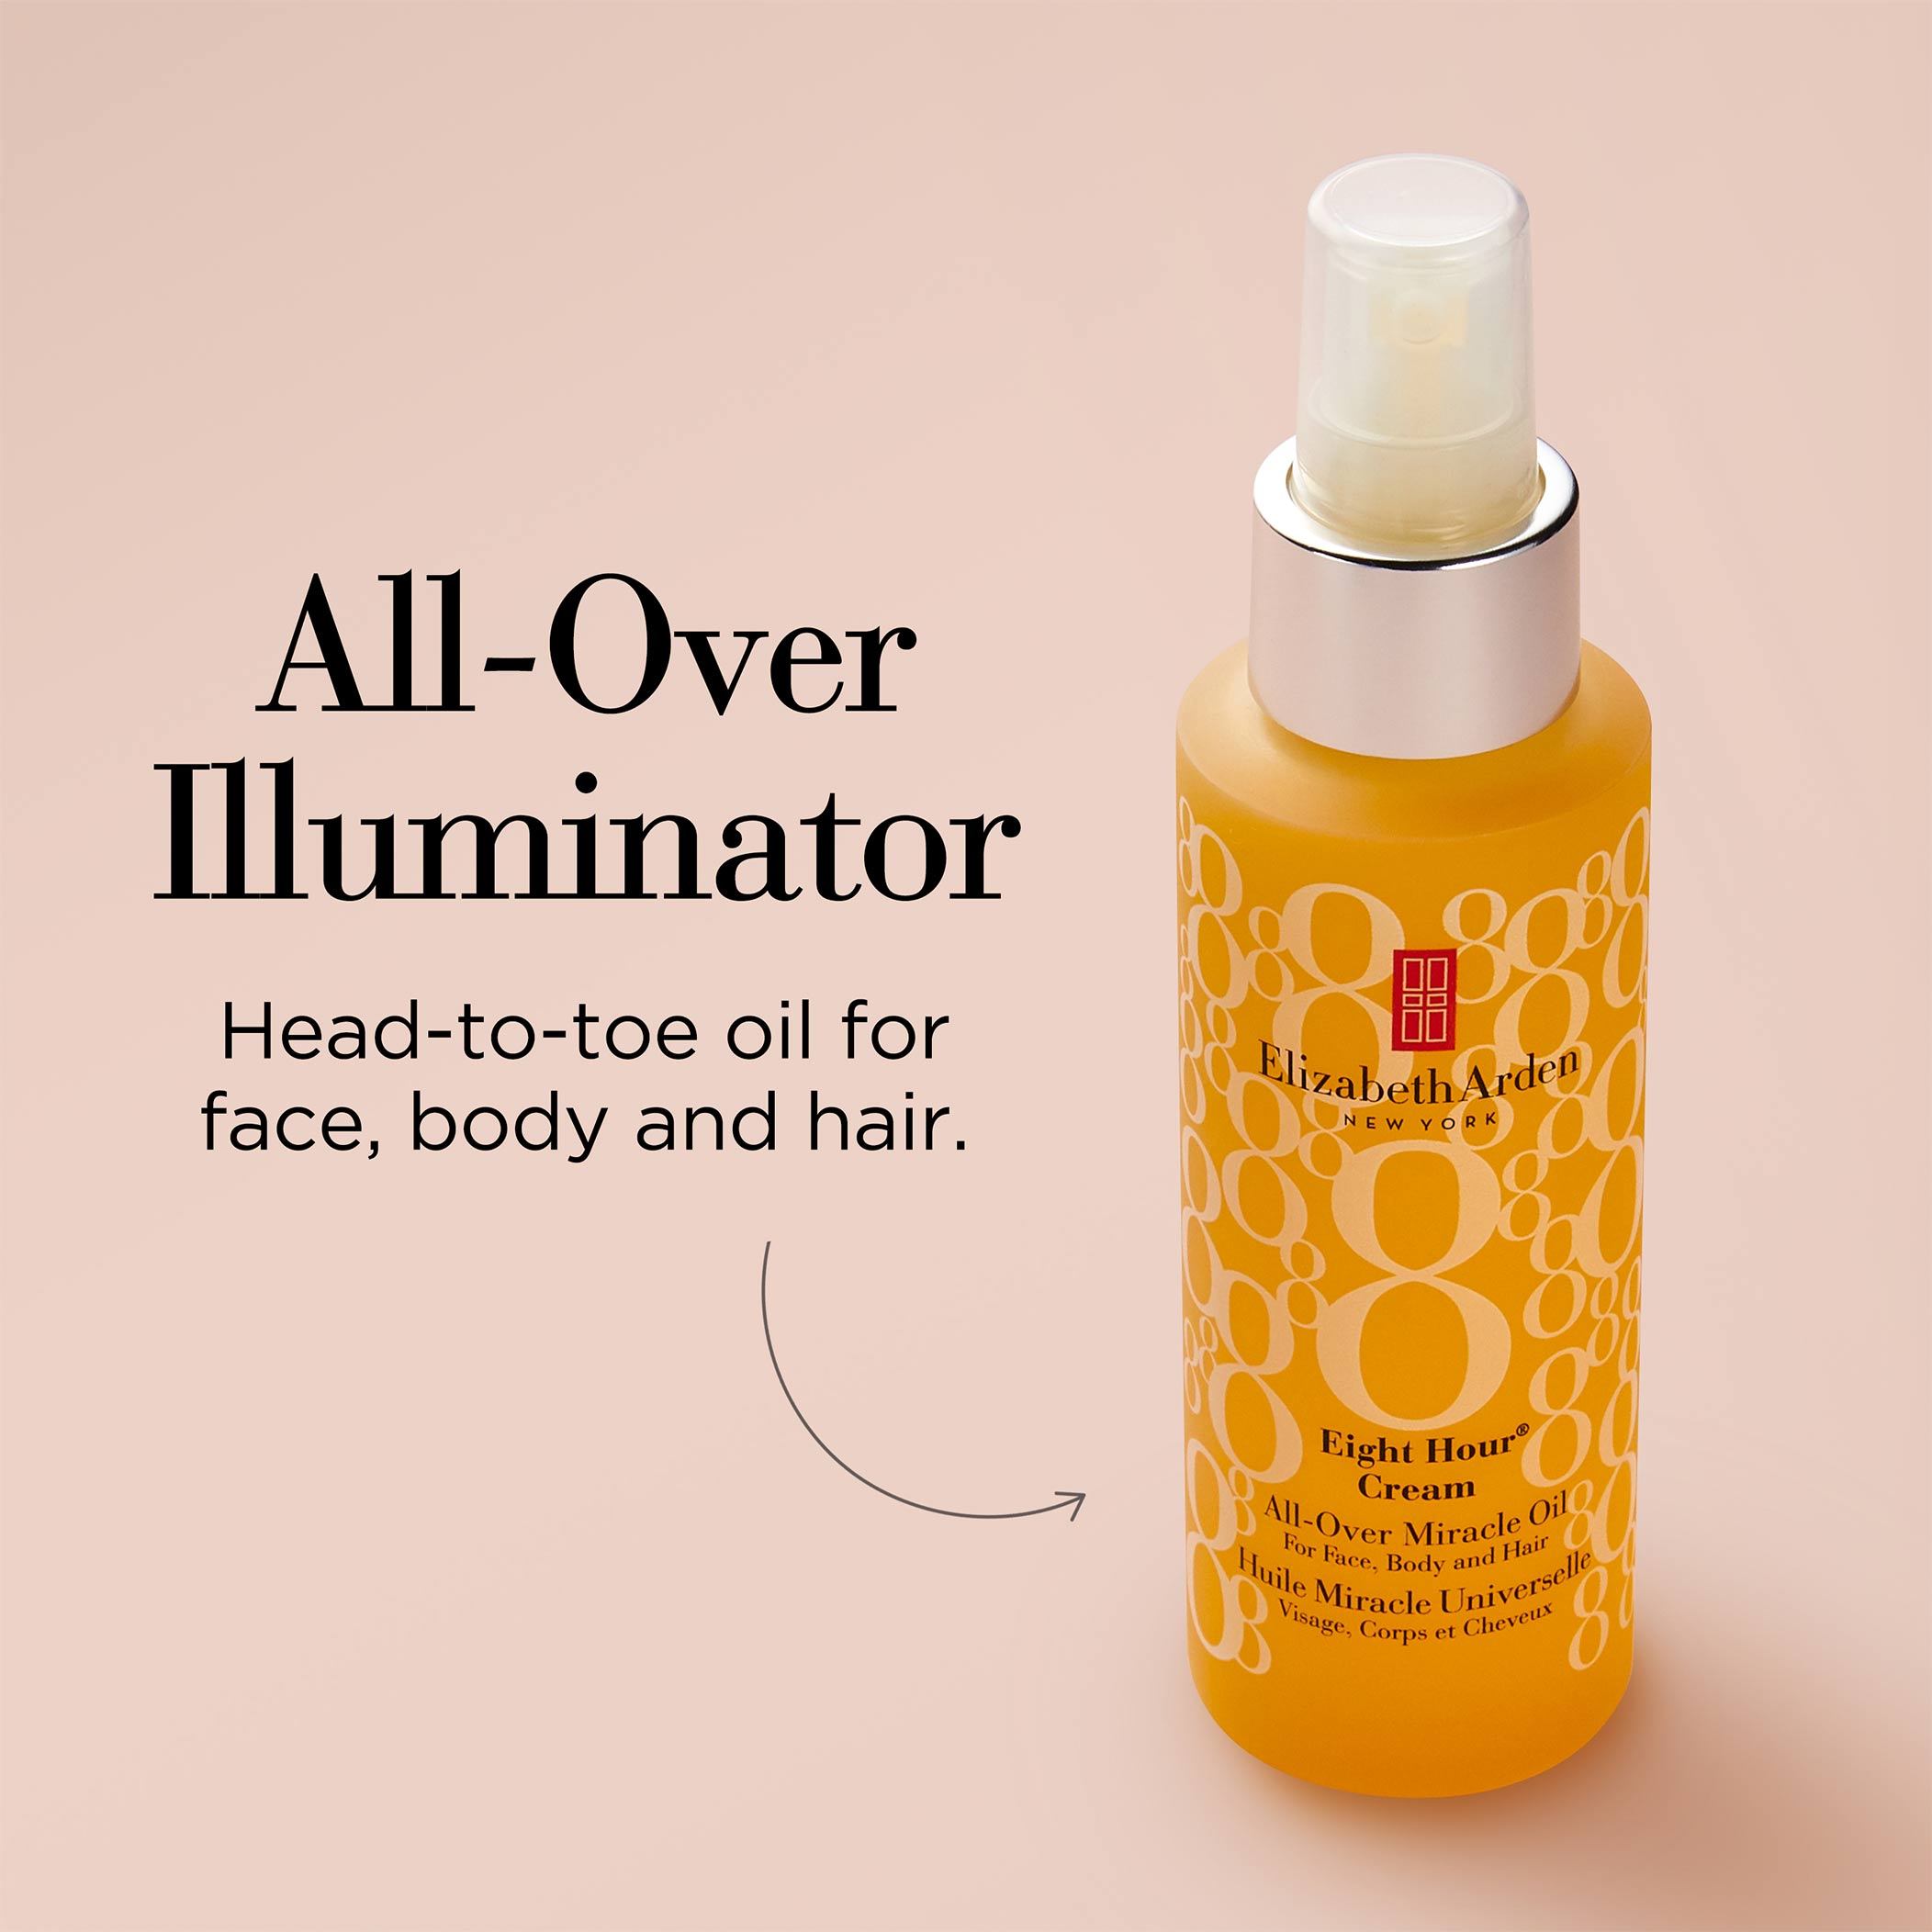 All-Over Illuminator- Head-to-toe oil for face, body and hair